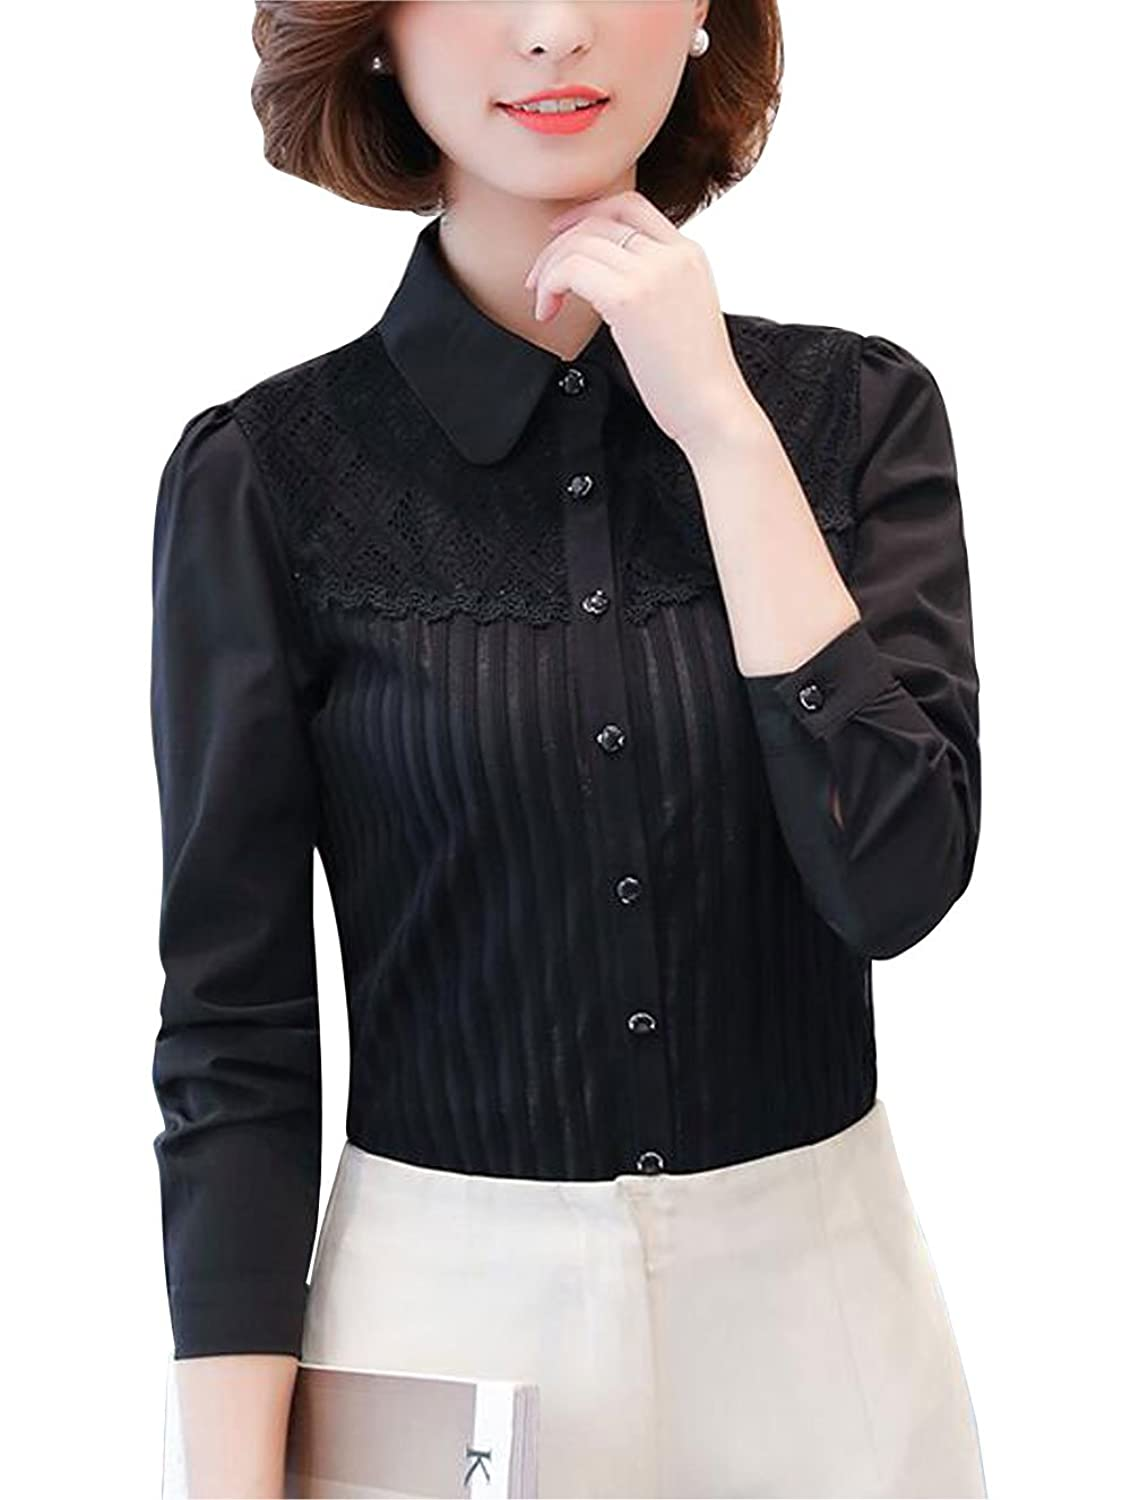 1920s Blouses & Shirts History Double Plus Open DPO Womens Vintage Collared Pleated Button Down Shirt Long Sleeve Lace Stretchy Blouse $23.59 AT vintagedancer.com